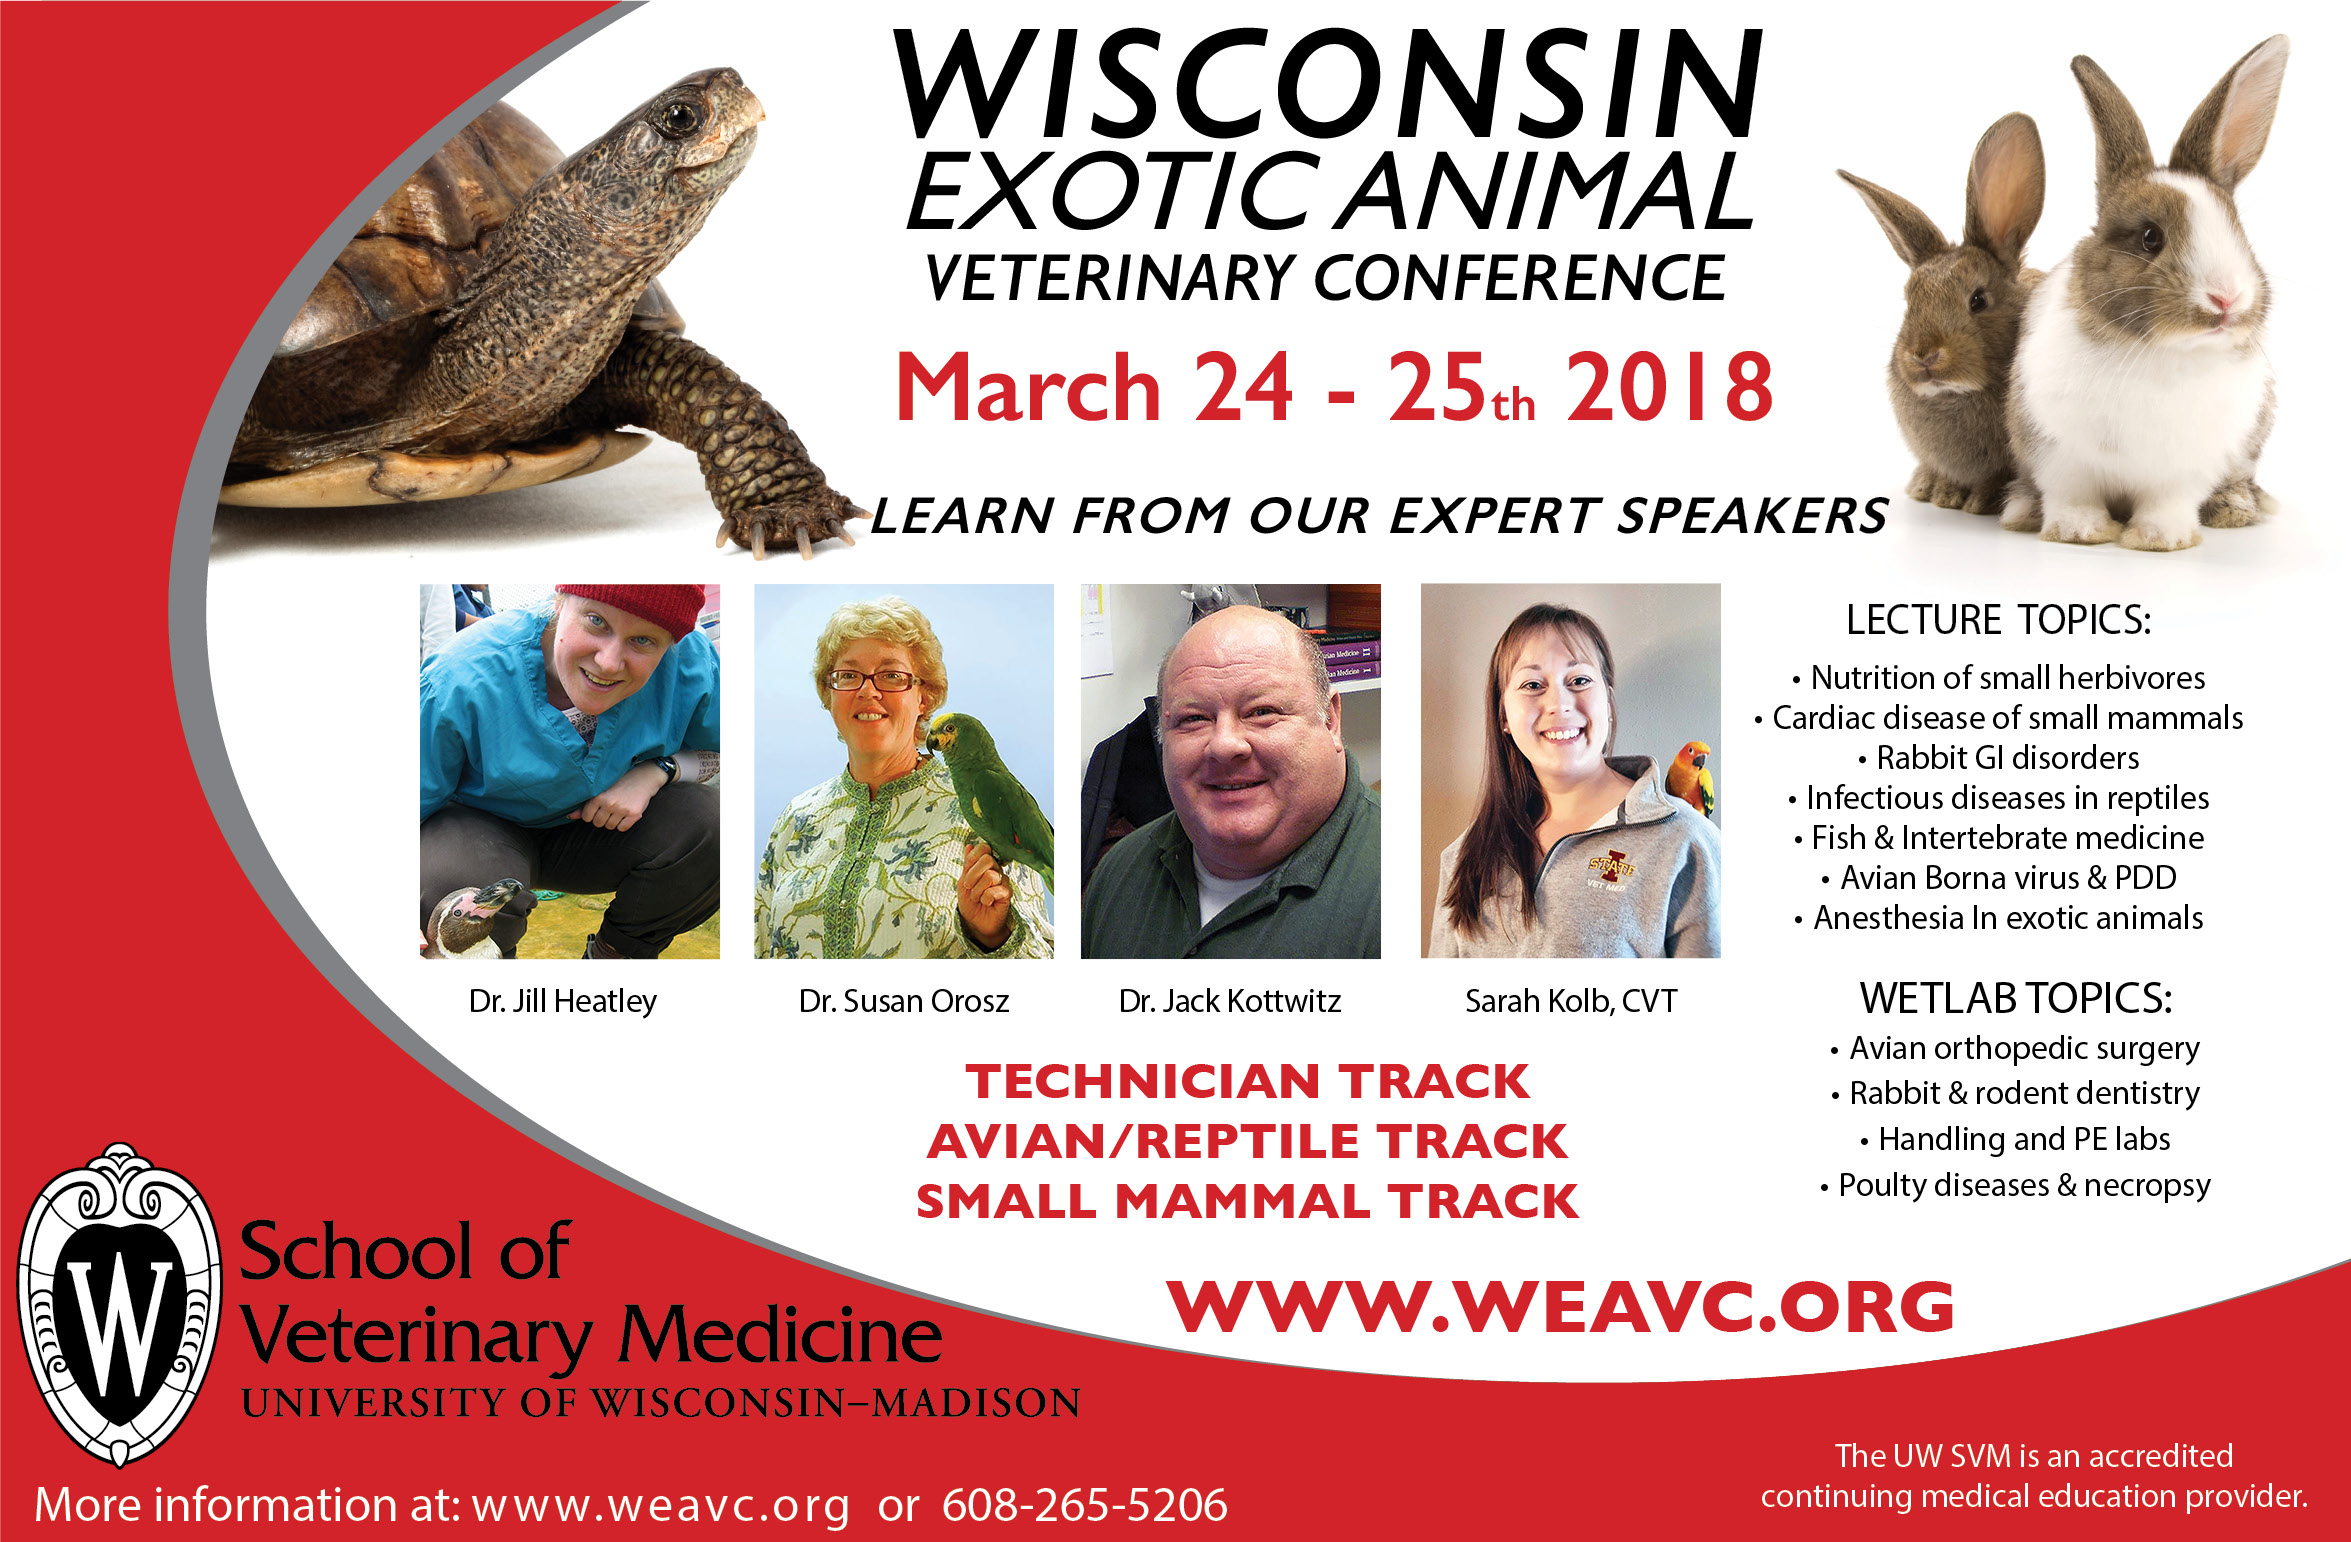 Wisconsin Exotic Animal Veterinary Conference